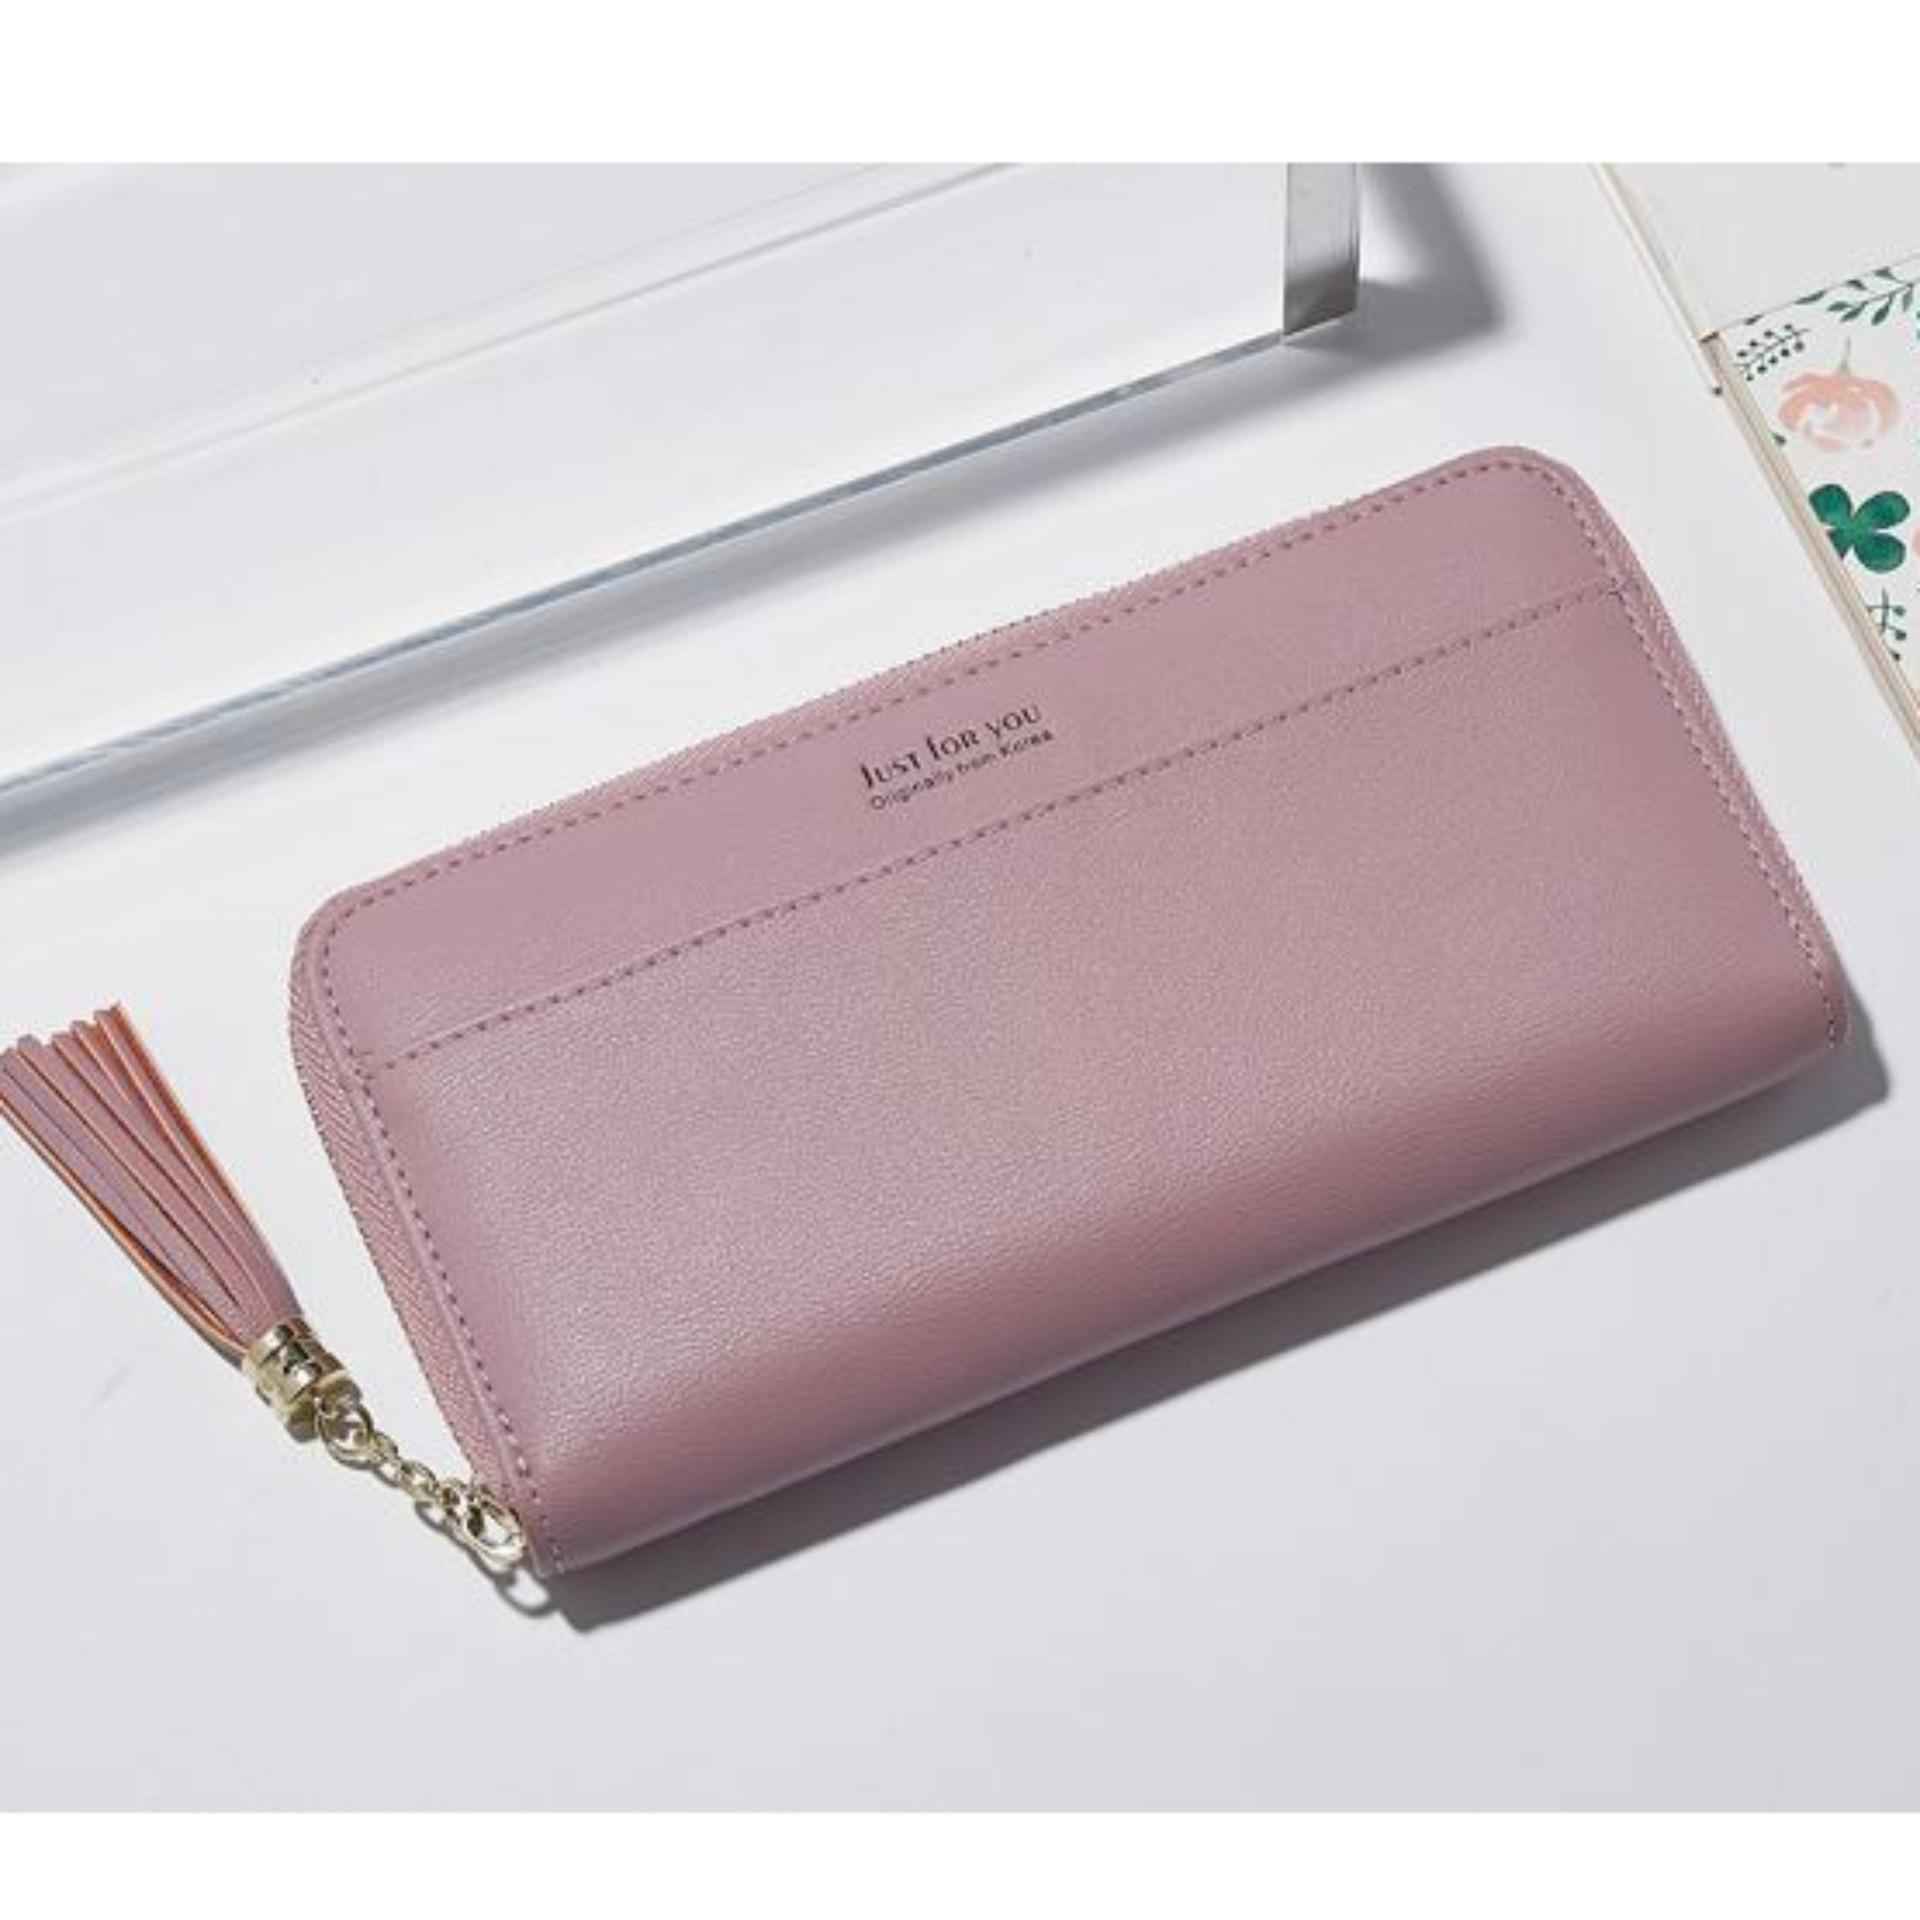 Louis - Dompet Wanita Panjang Just For You 3ac2becb9f